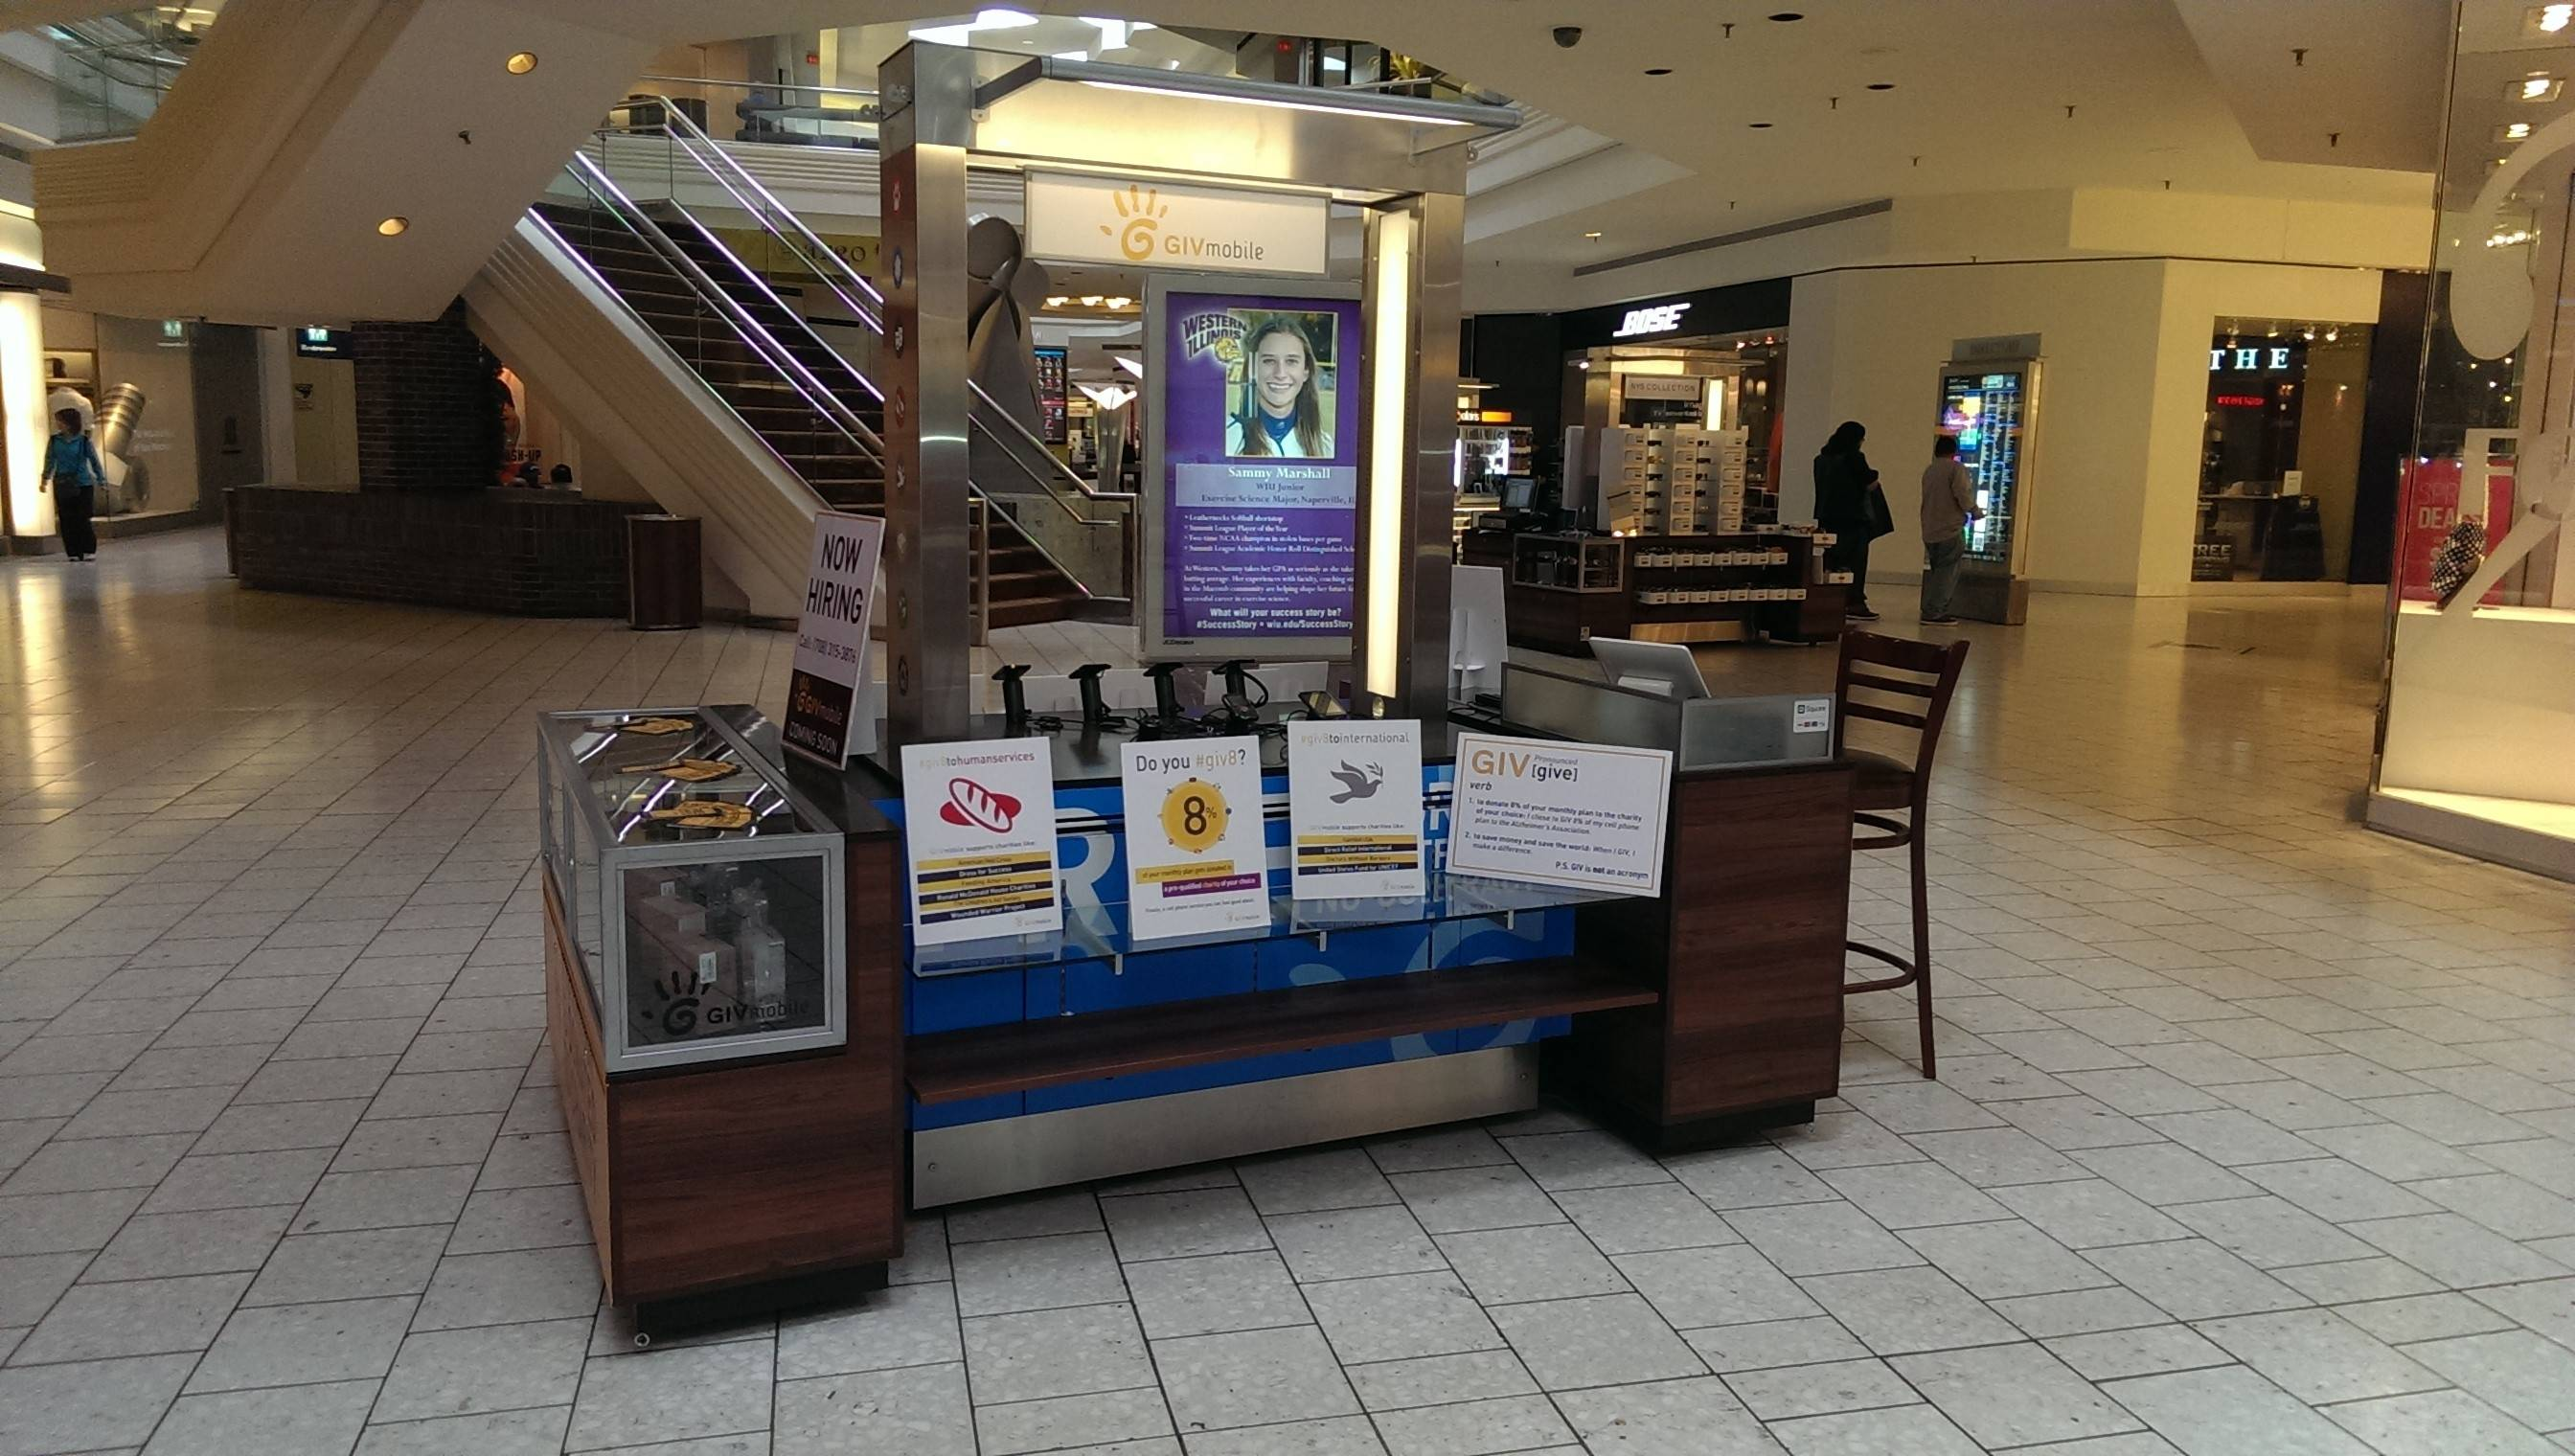 GIV Mobile has opened this kiosk last week in Woodfield Mall in Schaumburg. The company's first kiosk opened in mid-March in Yorktown Mall in Lombard.